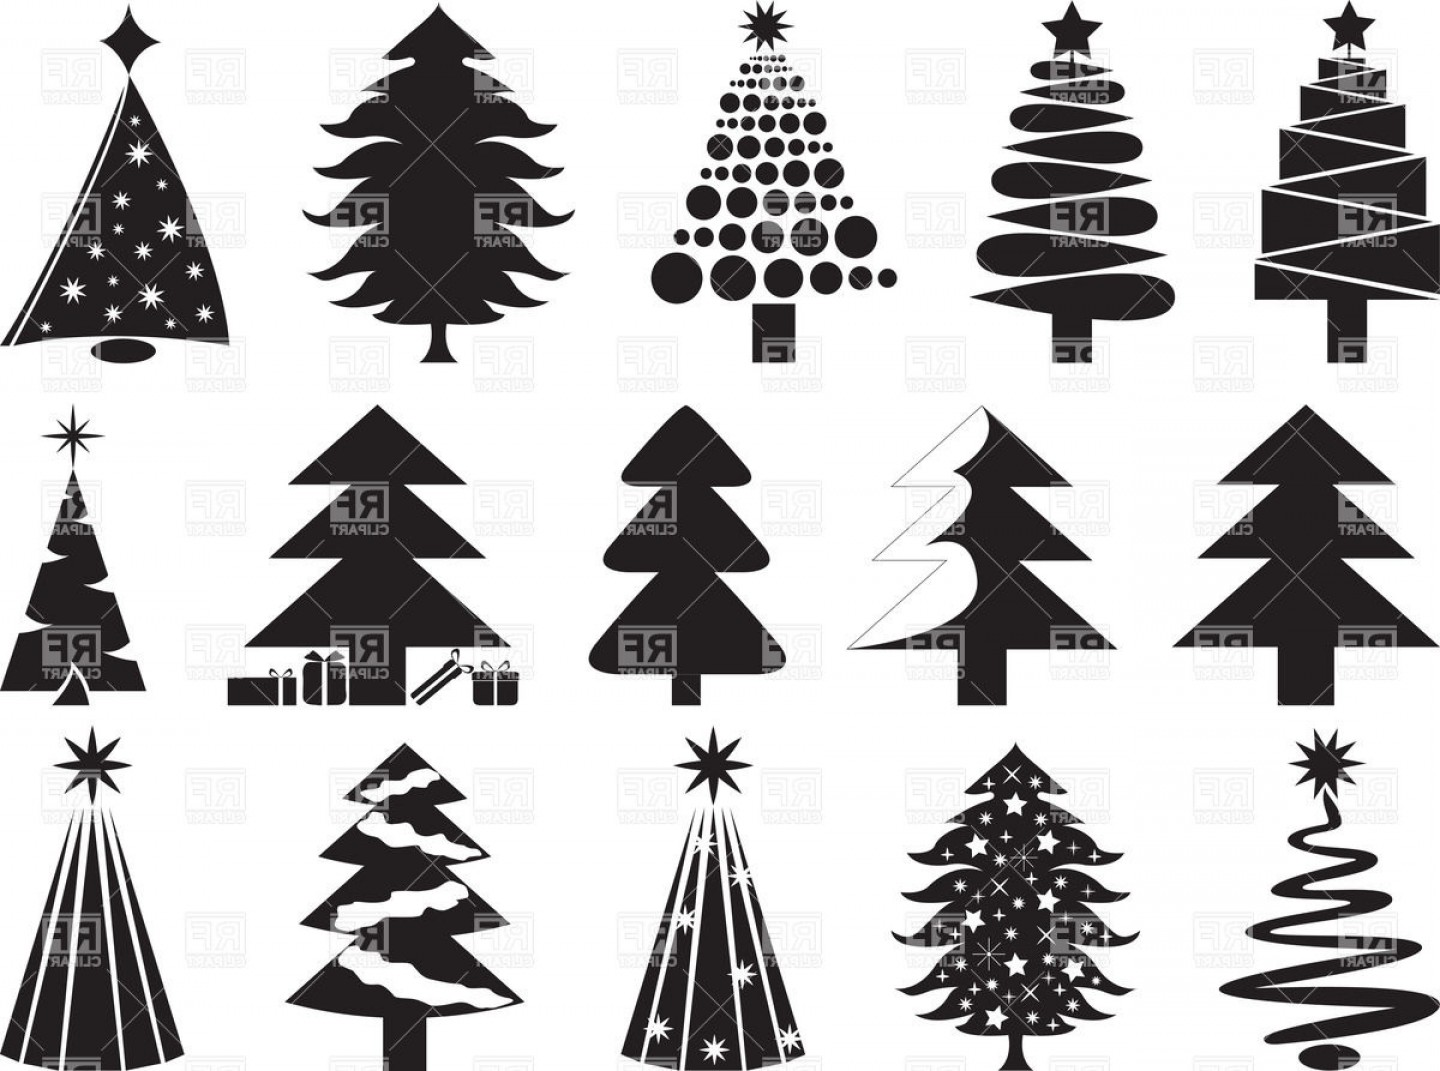 Tree Silhouette Vector Clip Art: Stylized Silhouettes Of Christmas Trees Vector Clipart